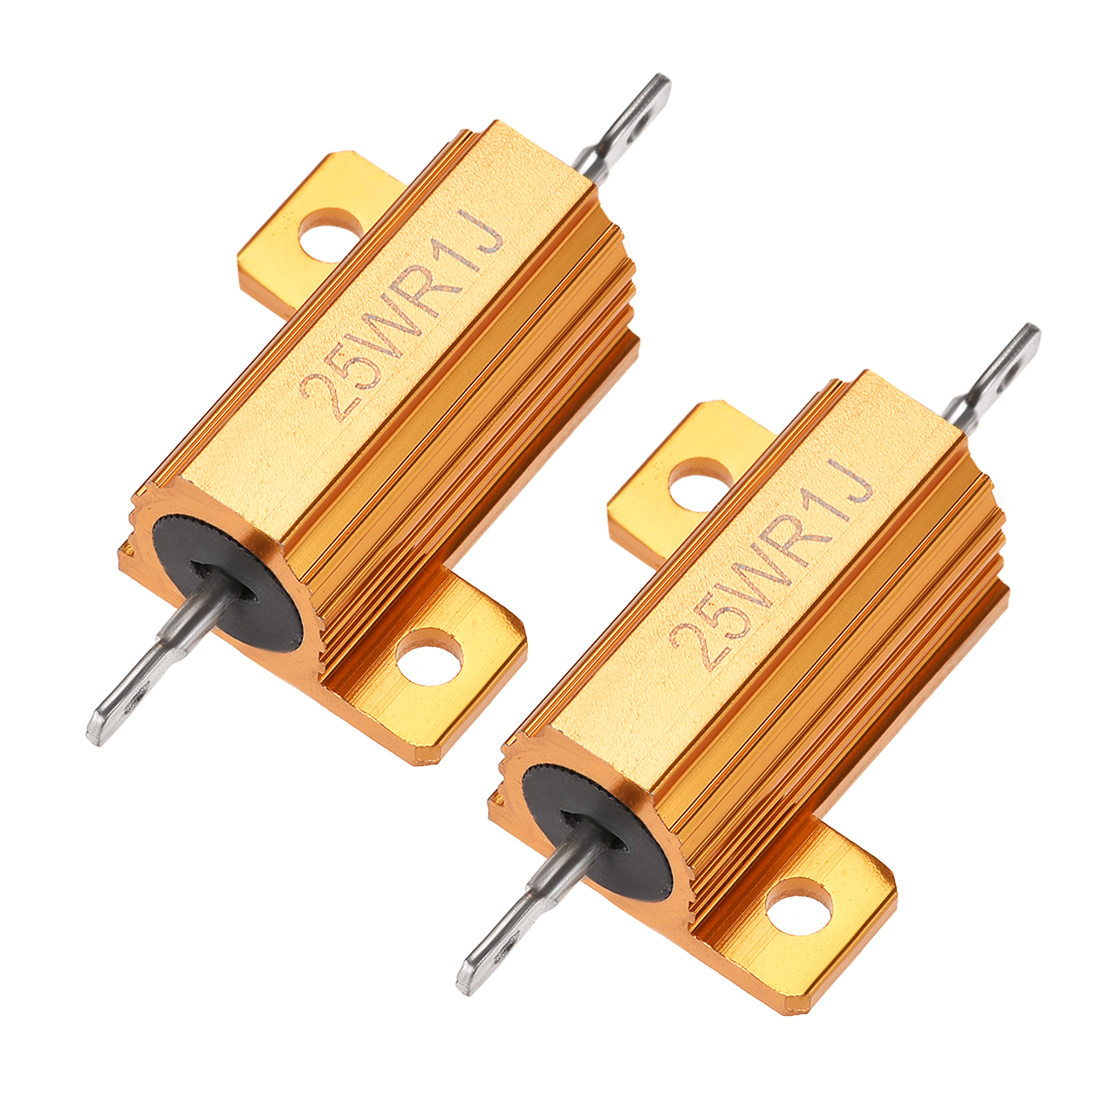 25 Watt 0.1 Ohm 5% Aluminum Housing Resistor Wirewound Resistor Gold Tone 2 Pcs